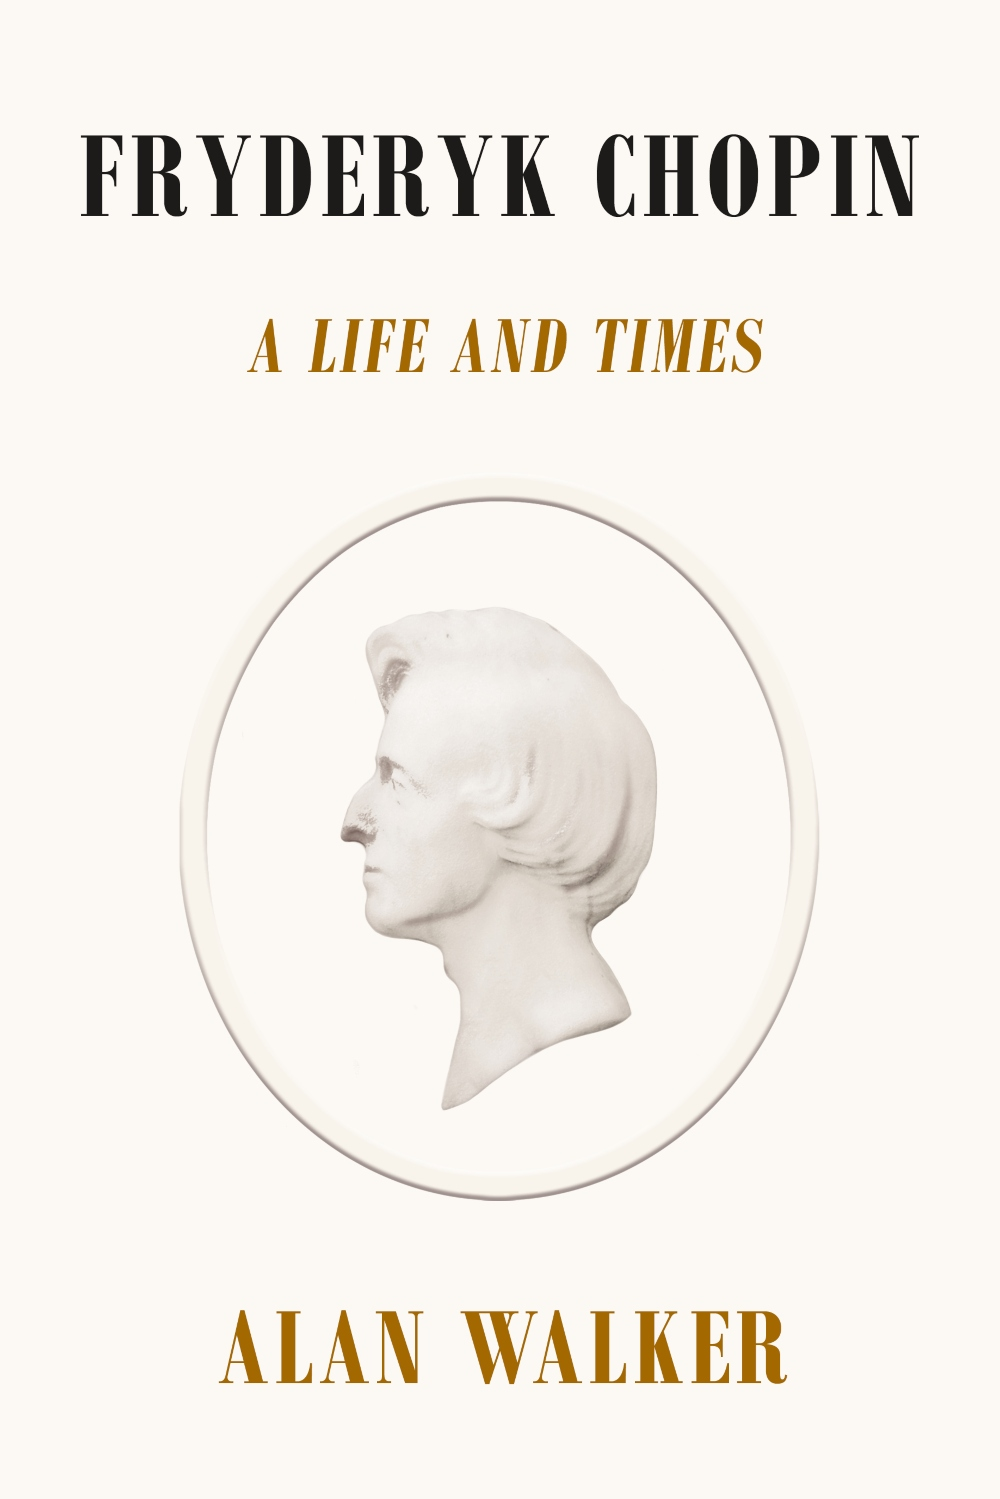 Book jacket for Fryderyk Chopin: A Life and Times.